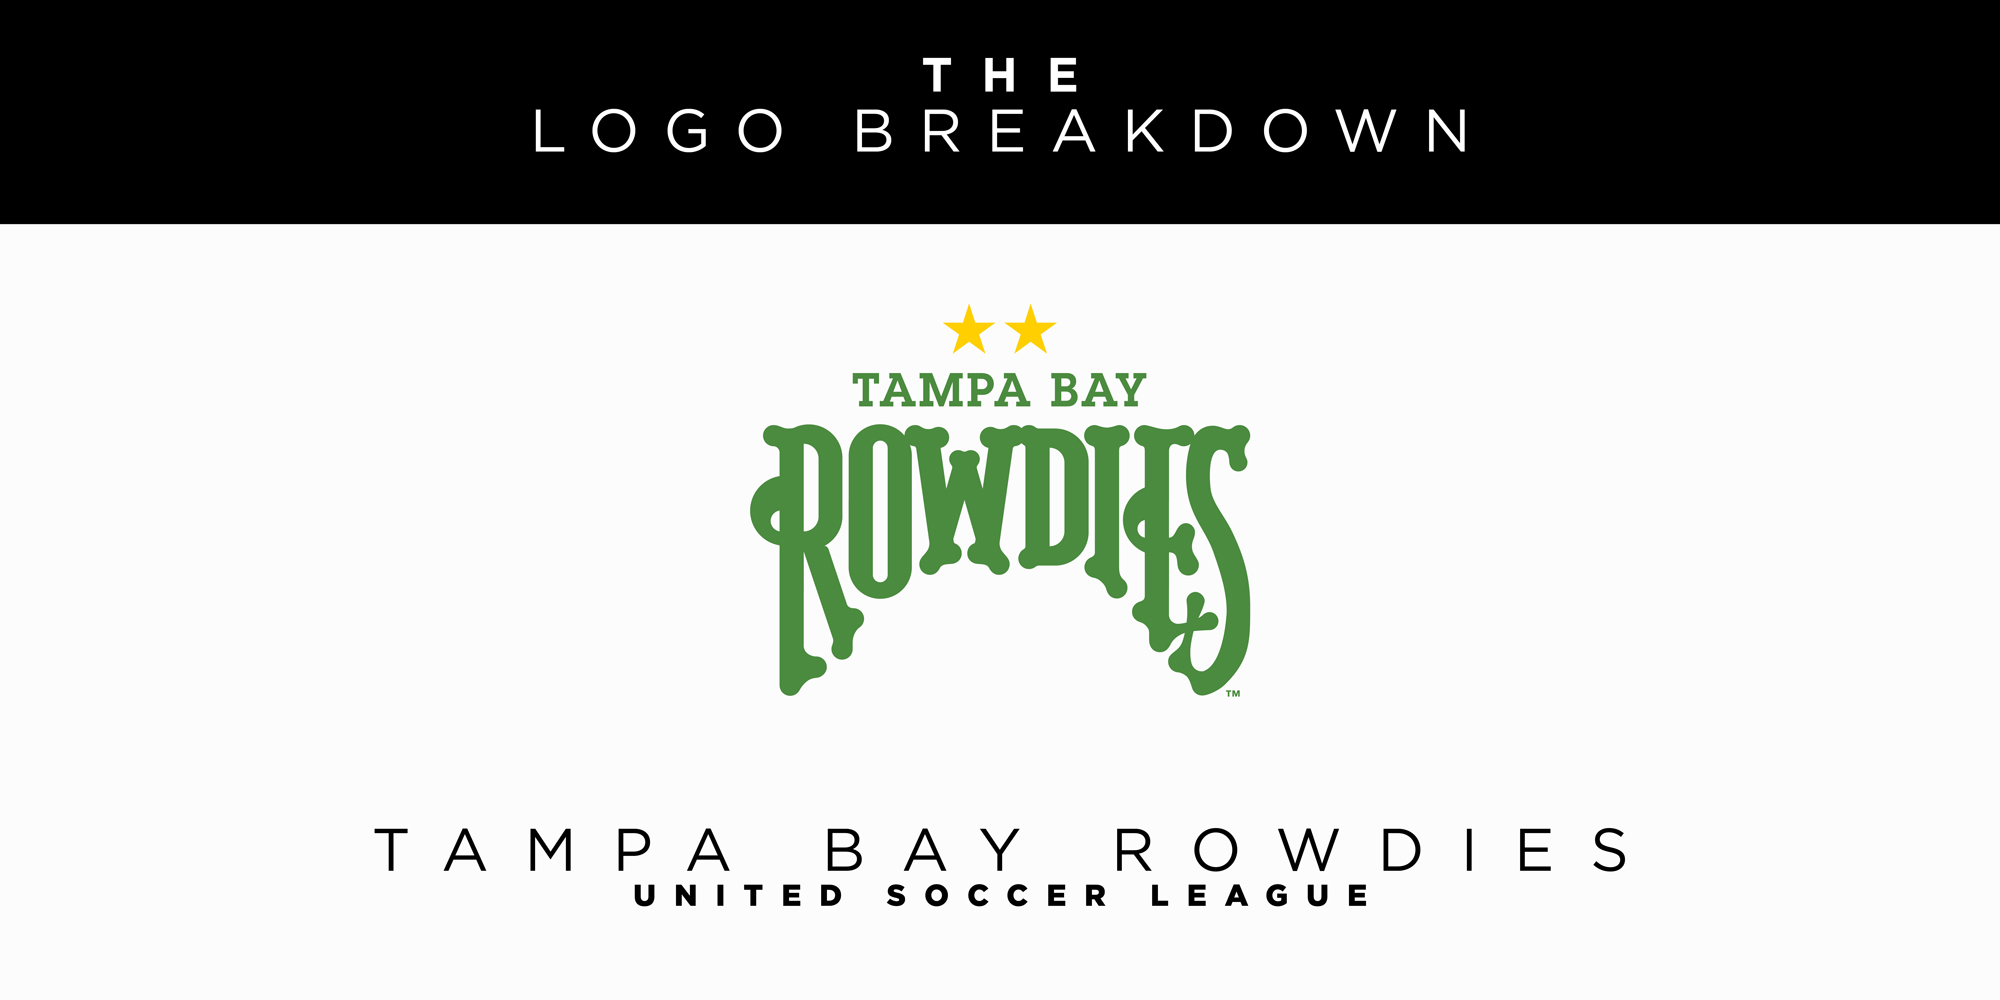 Tampa-Bay-Rowdies-Cover-Image.jpg